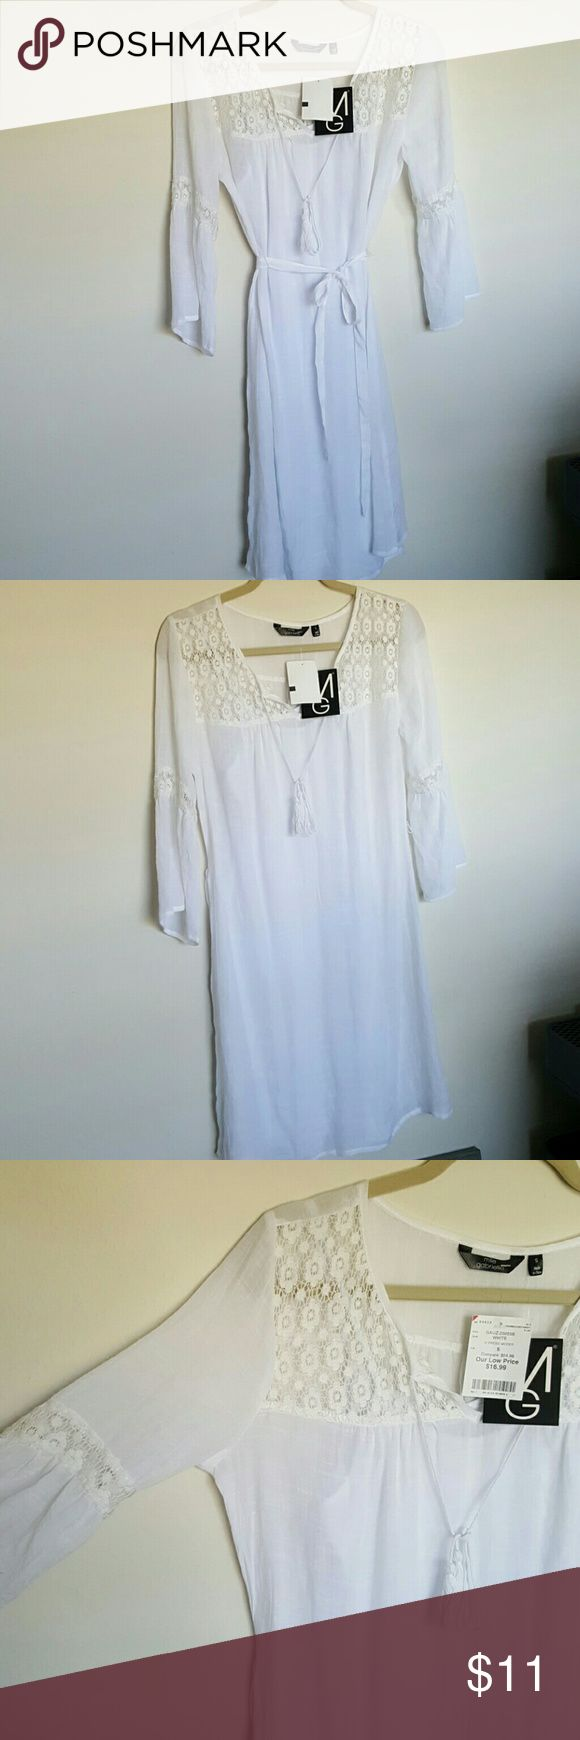 NWT white festival dress Lace details, tie around waist or can be worn without. Comes with white slip underneath. Perfect for the beach or festivals! Dresses Midi